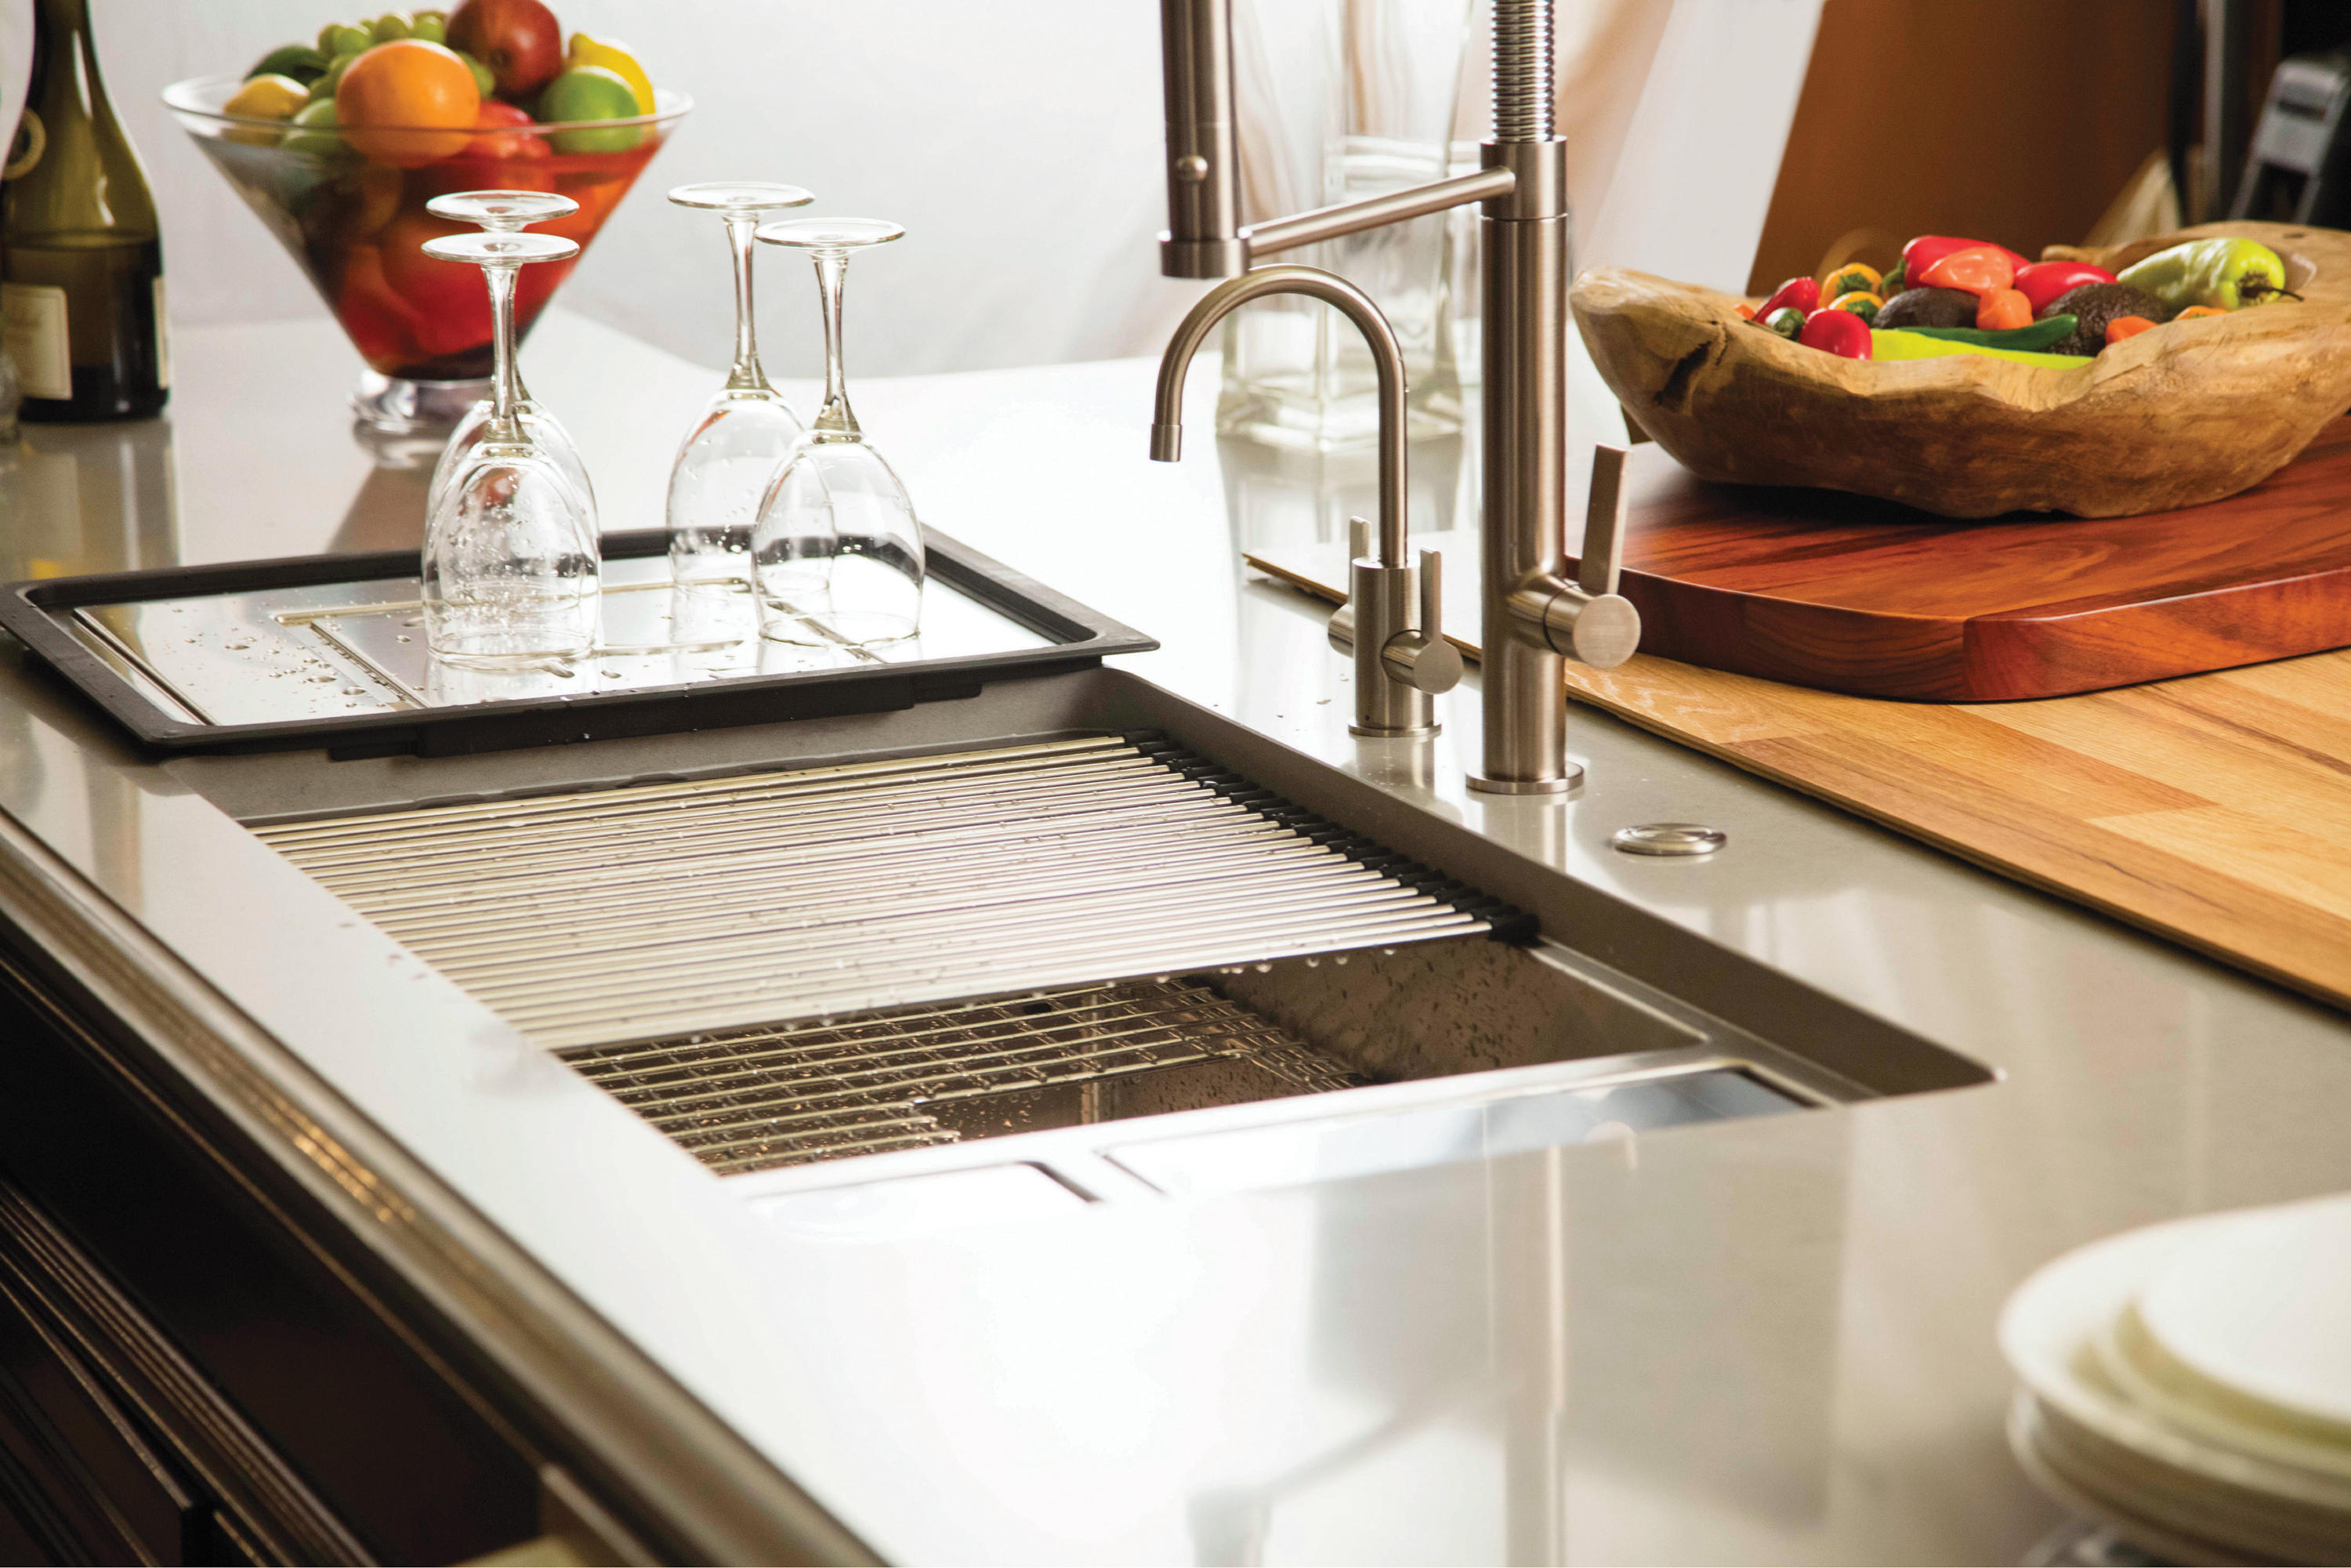 Uncategorized Franke Kitchen Appliances chef center sinks stainless steel kitchen from franke by systems